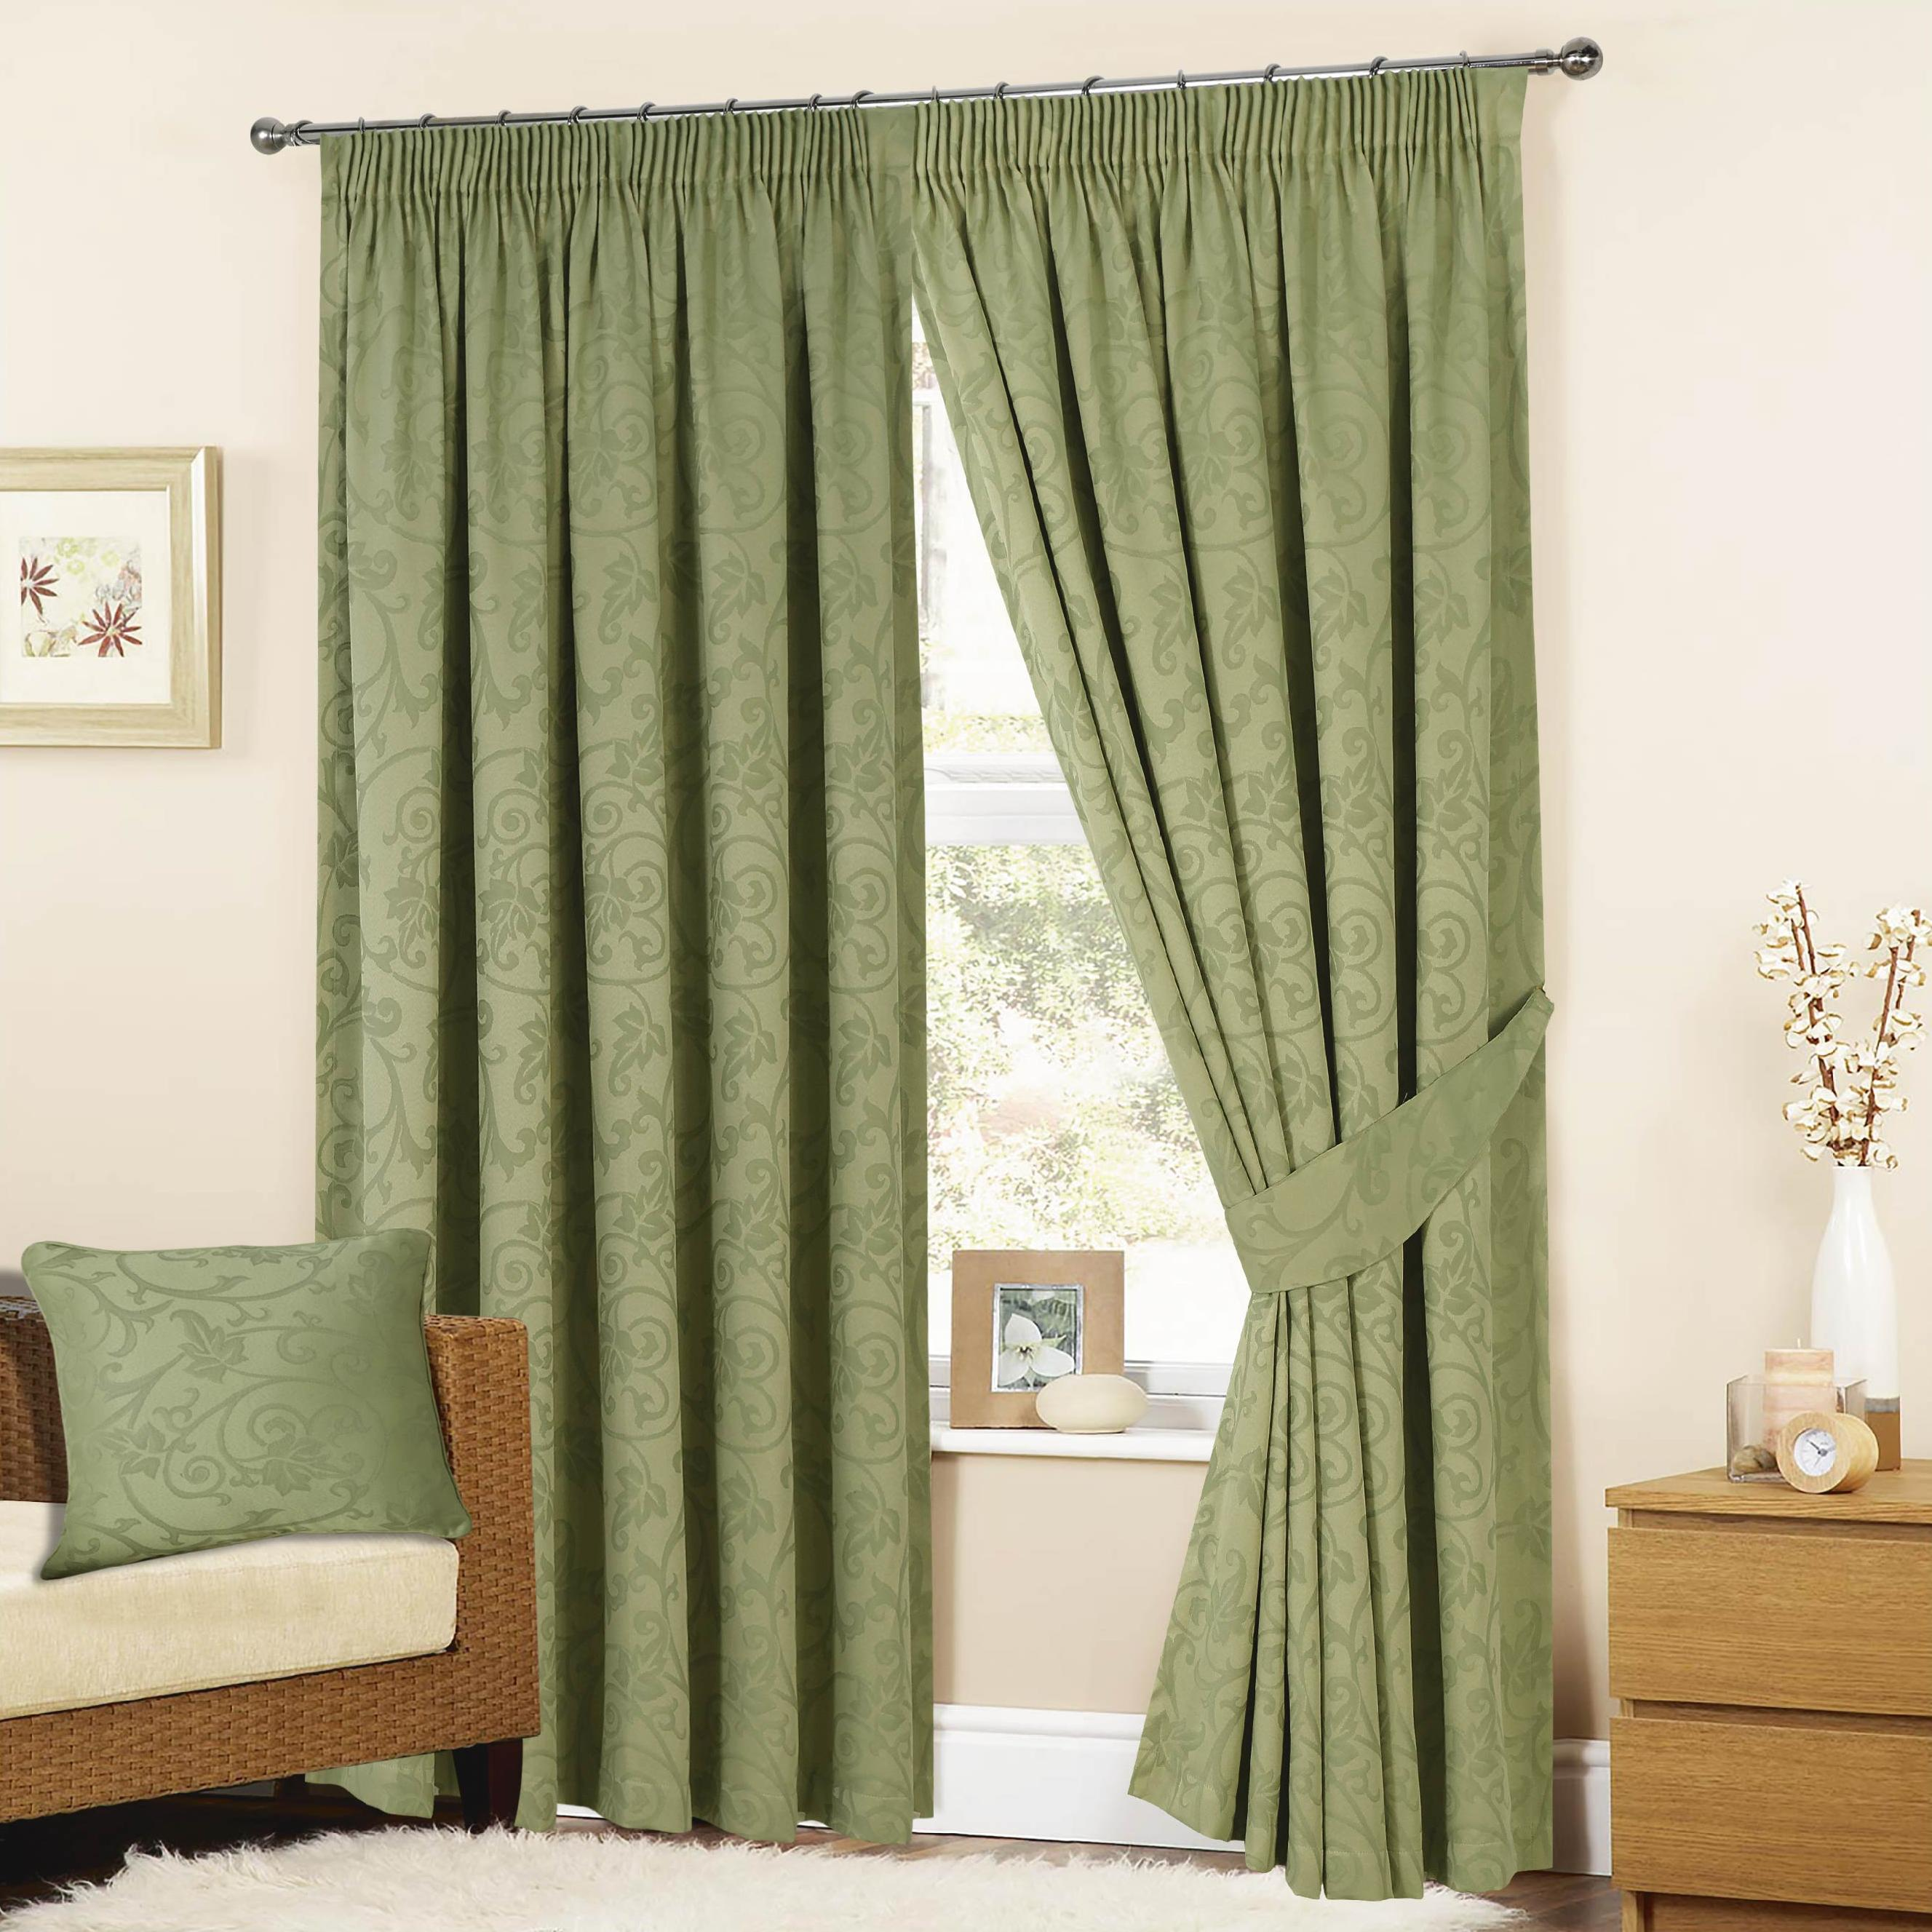 Turin Jacquard Woven Fully Lined Pencil Pleat Tape Top Curtains Sage Green Ebay